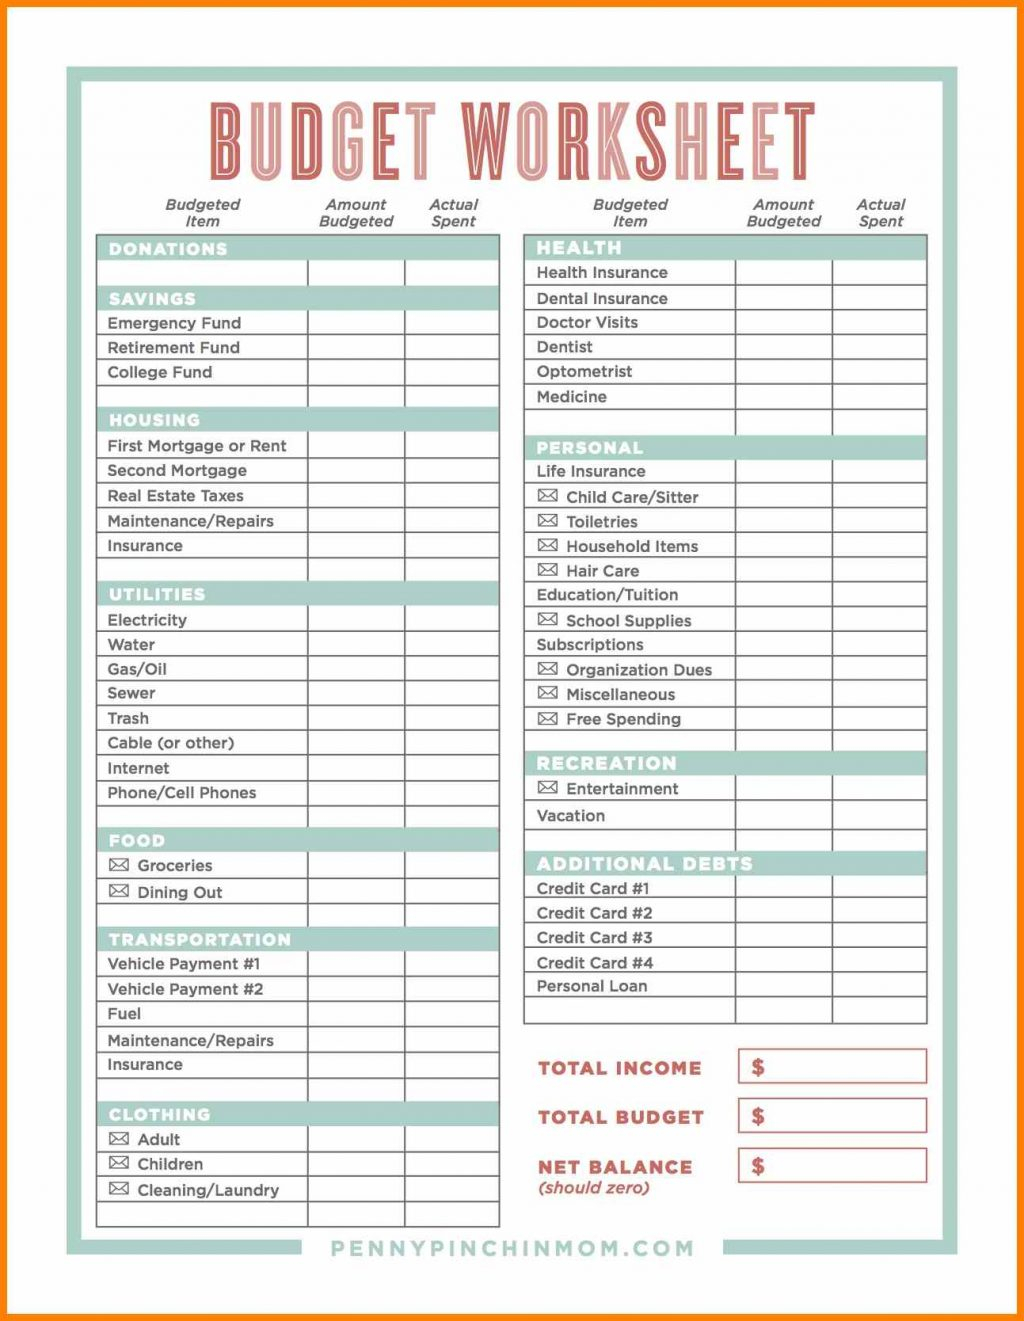 How To Create A Budget Spreadsheet Using Excel Pertaining To How To Createudget Spreadsheet In Excel Make Sheet Using Google Docs